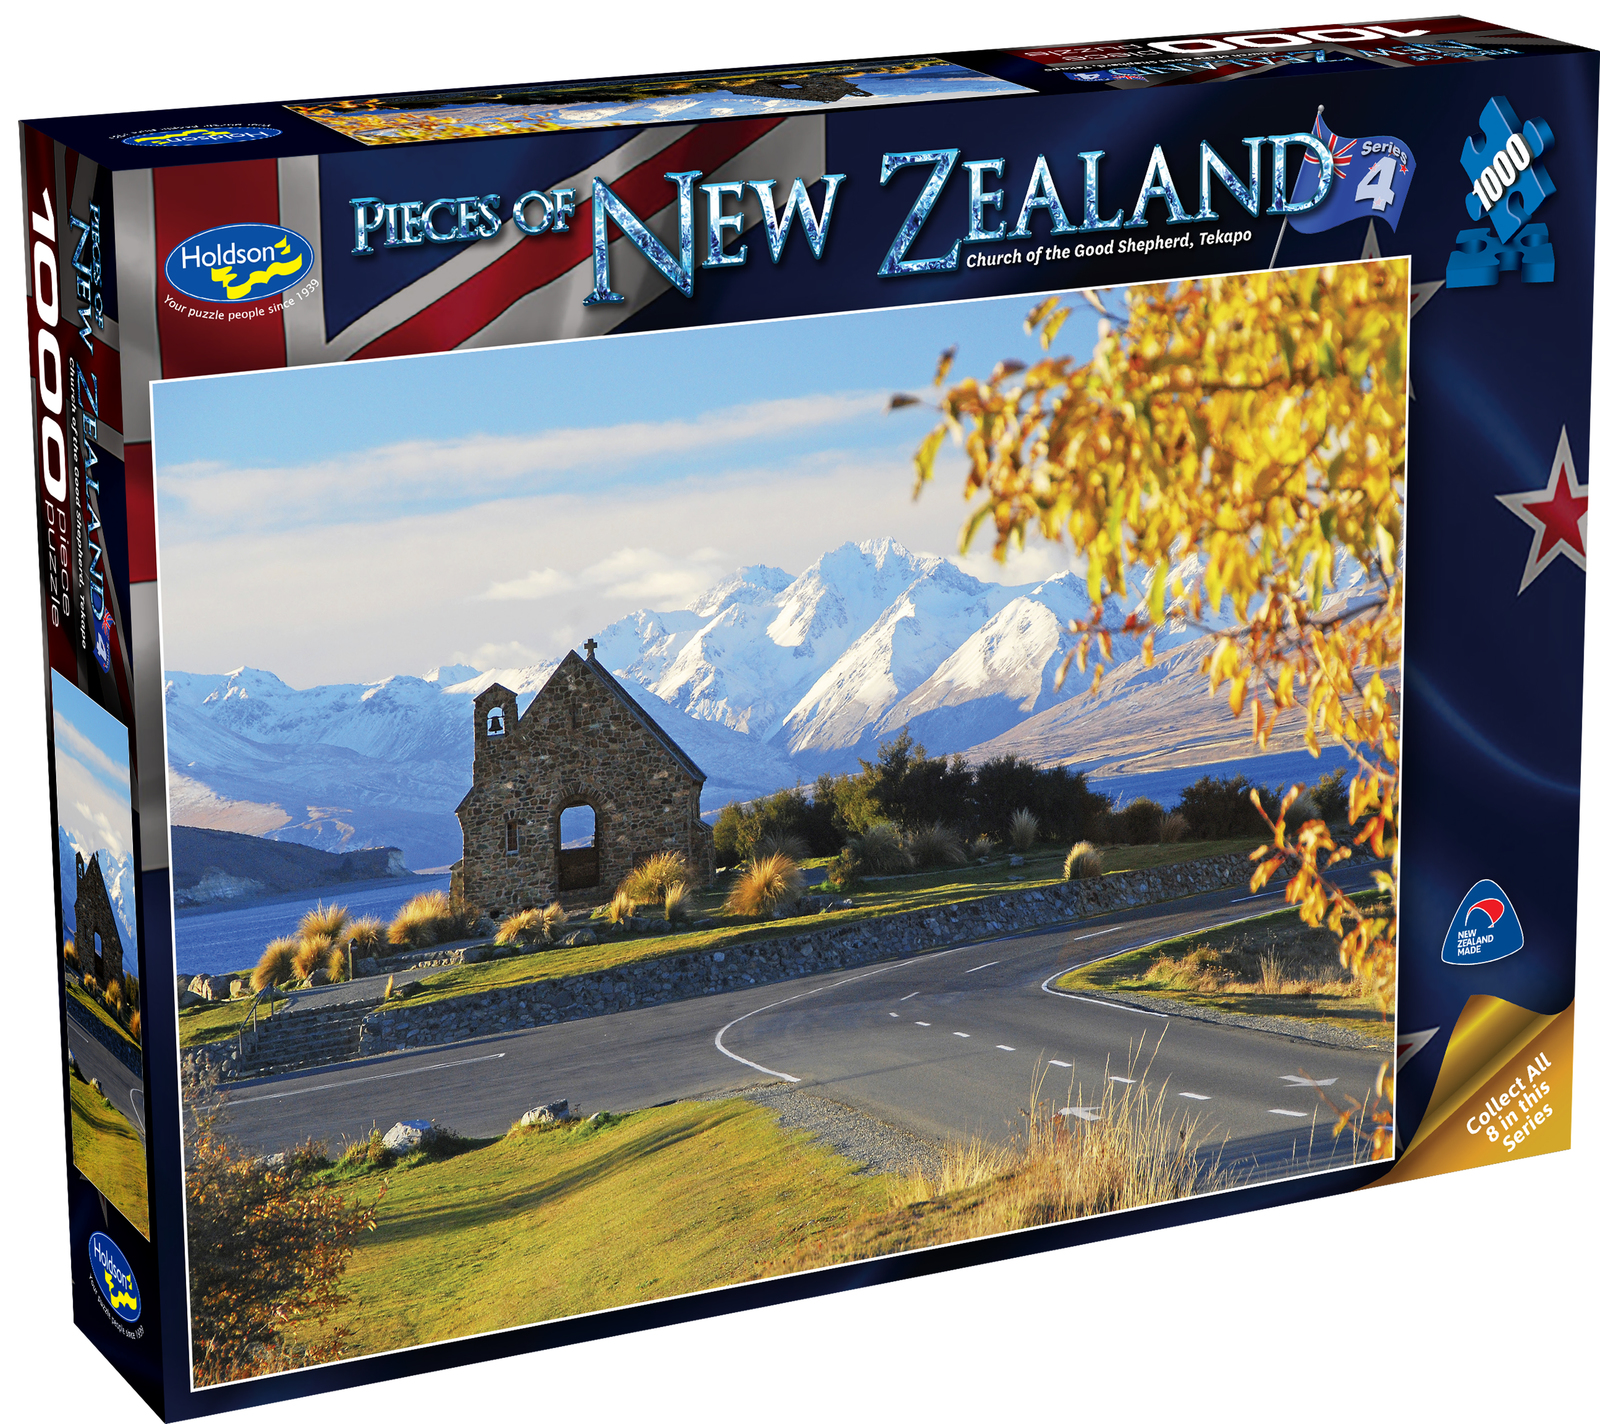 Holdson: Pieces of New Zealand - Series 4 - Church of the Good Shepherd Tekapo - 1000 Piece Puzzle image